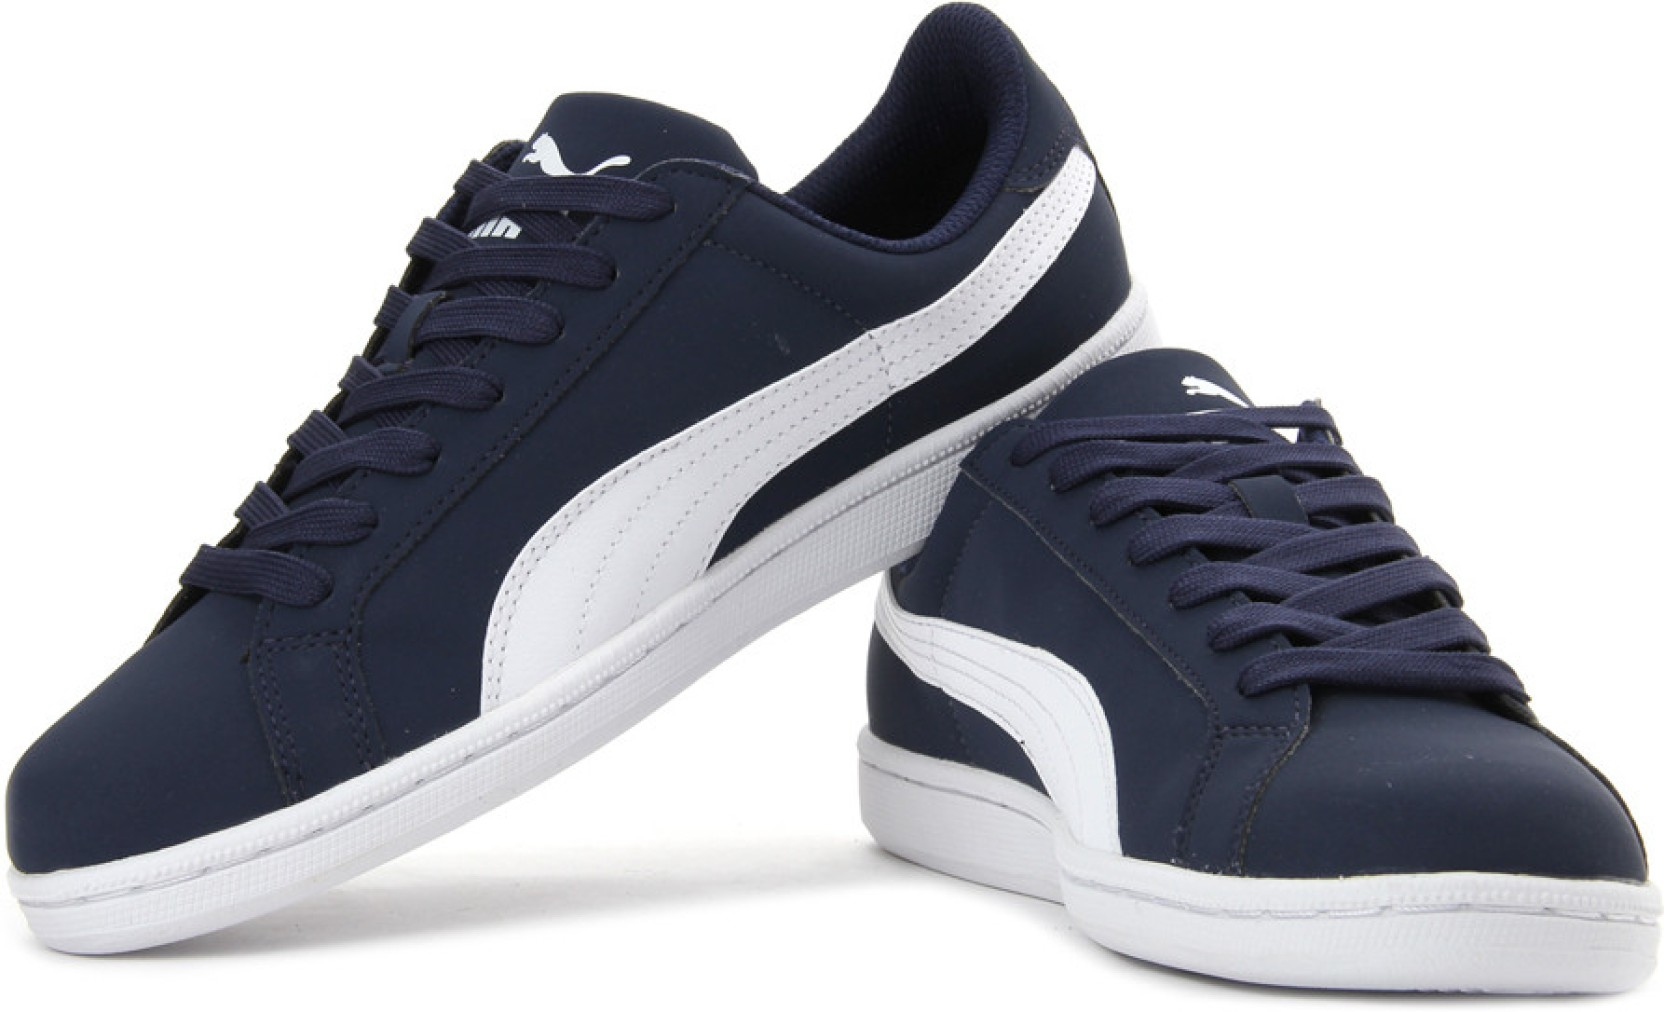 Size Shoes For Mens In India Online